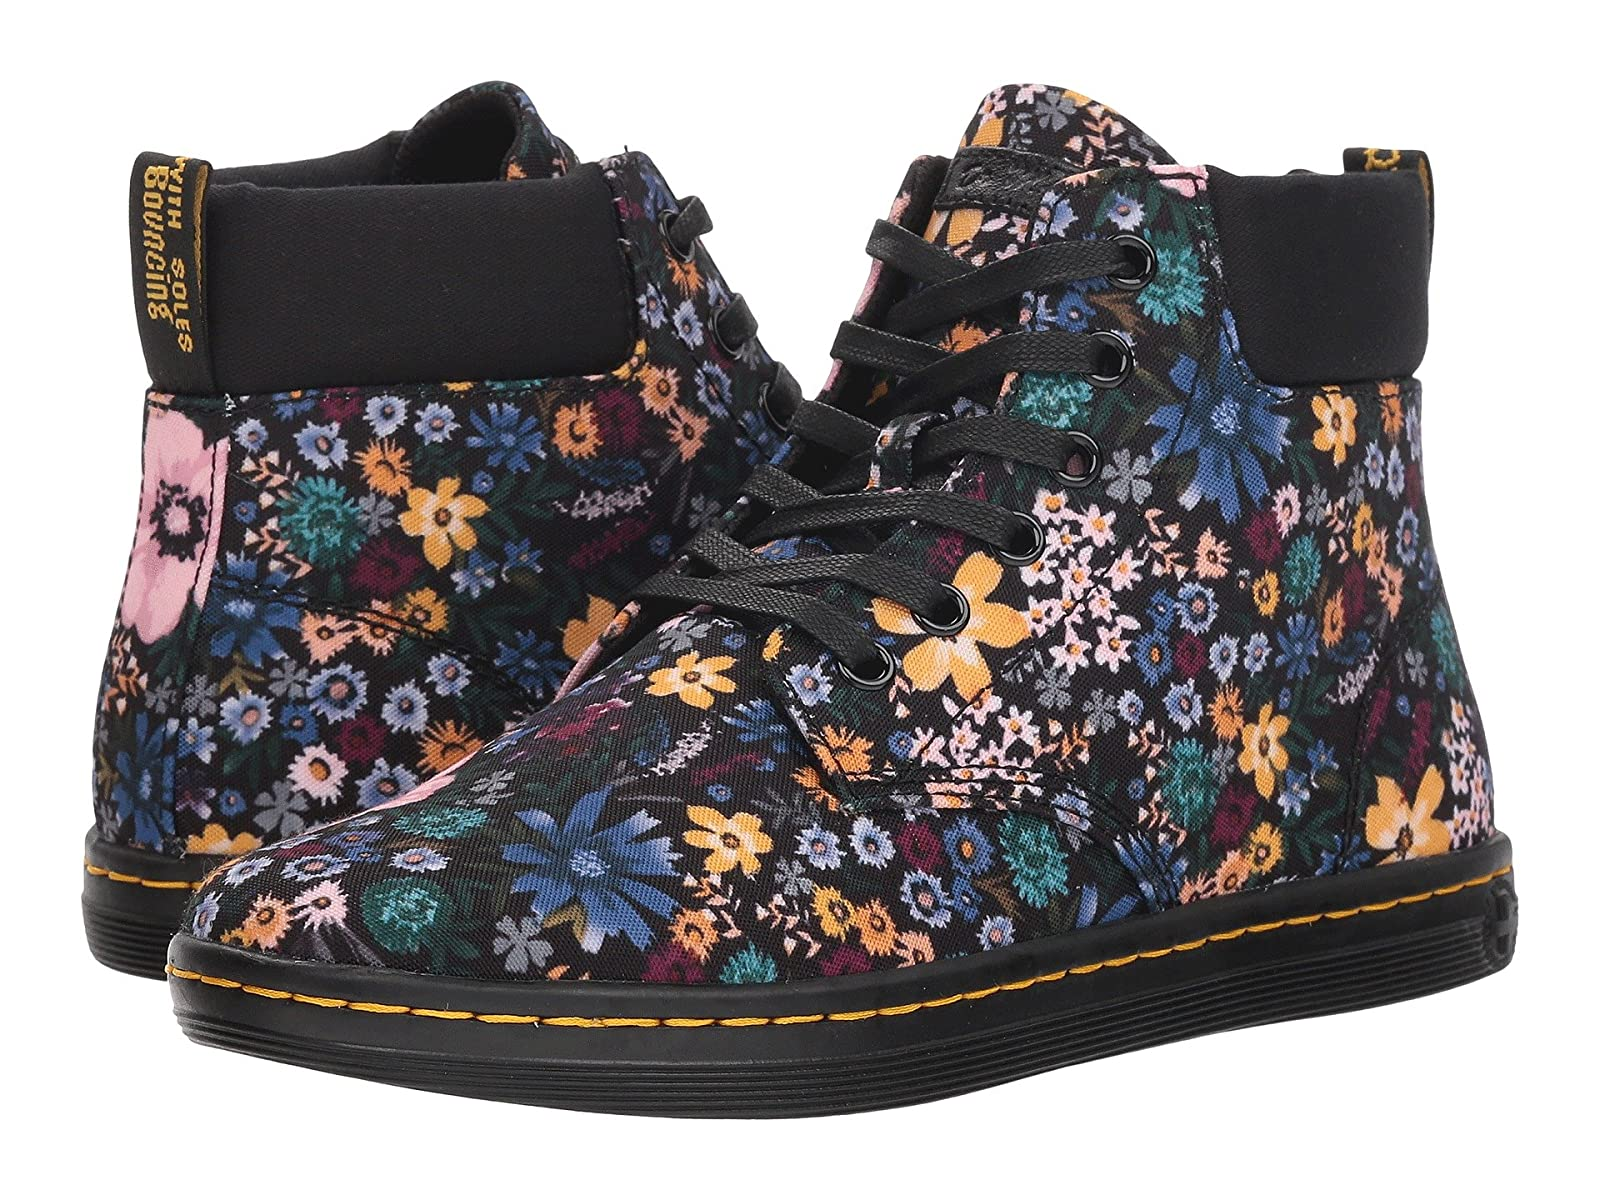 Dr. Martens Maelly Padded Collar BootCheap and distinctive eye-catching shoes